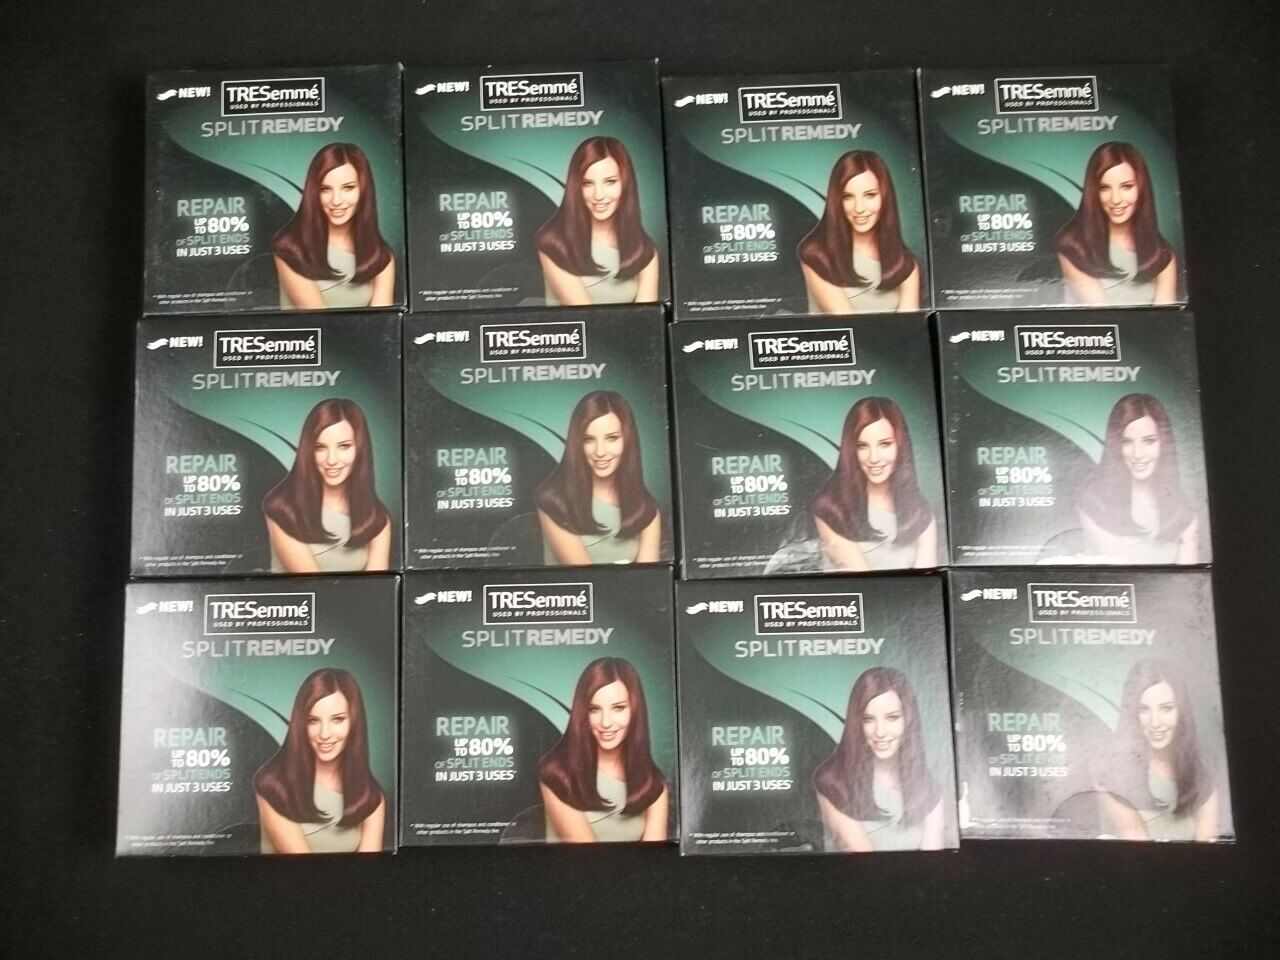 Tresemme Split Remedy Shampoo Conditioner Travel Trial 1 Oz Size Lot of 12 - $19.75